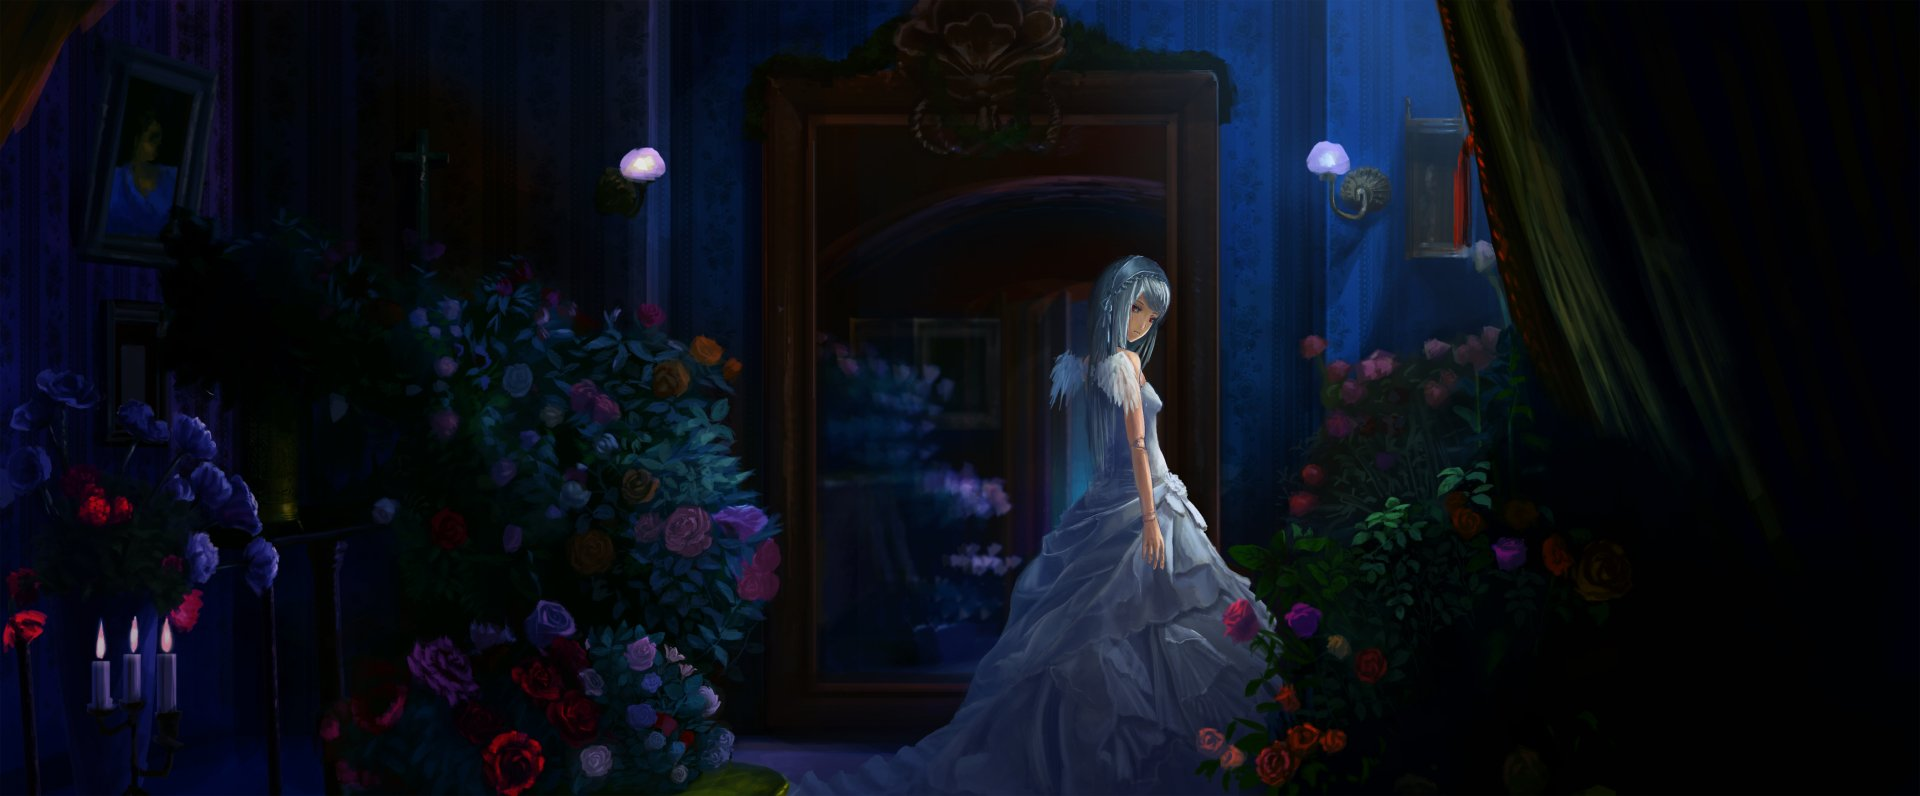 Wallpapers ID:821137